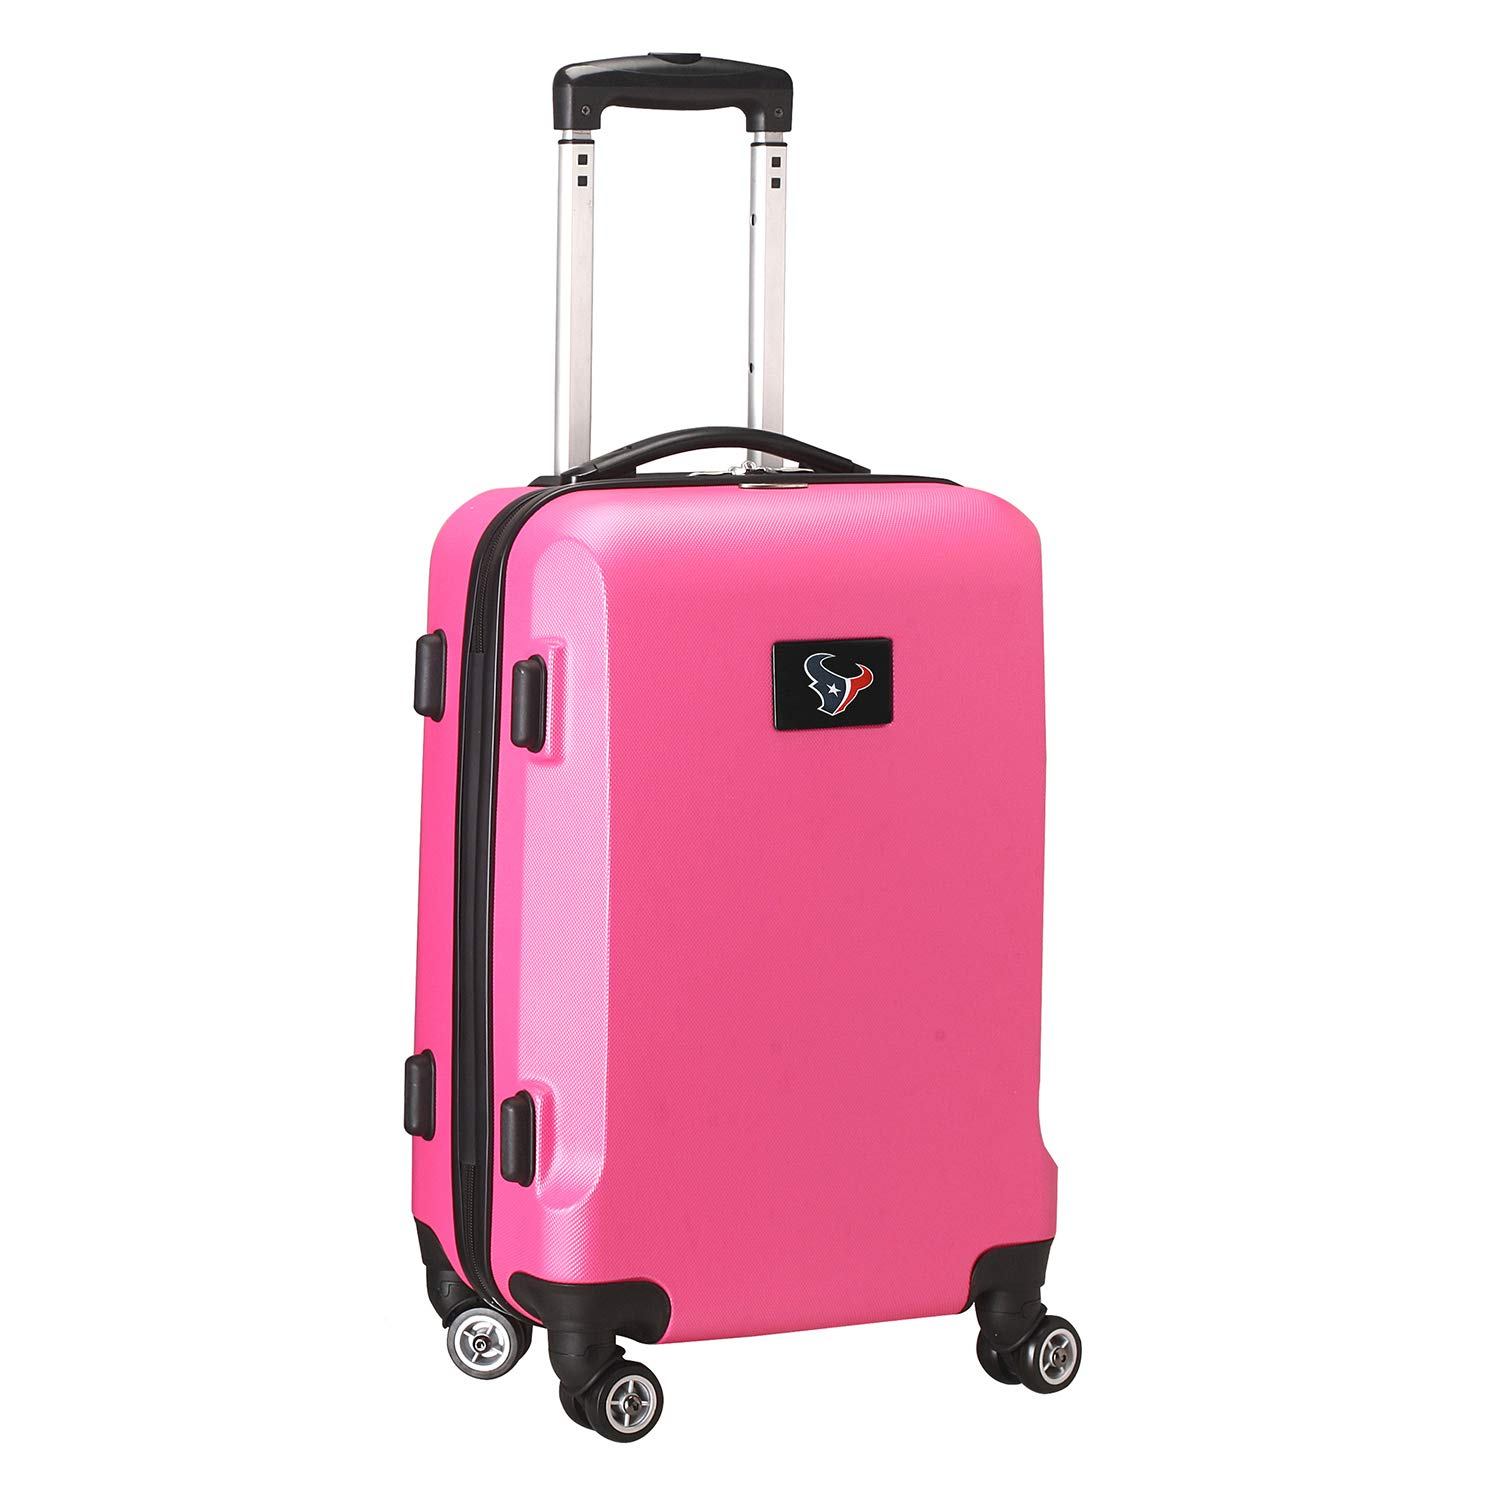 Denco NFL Houston Texans Carry-On Hardcase Luggage Spinner, Pink